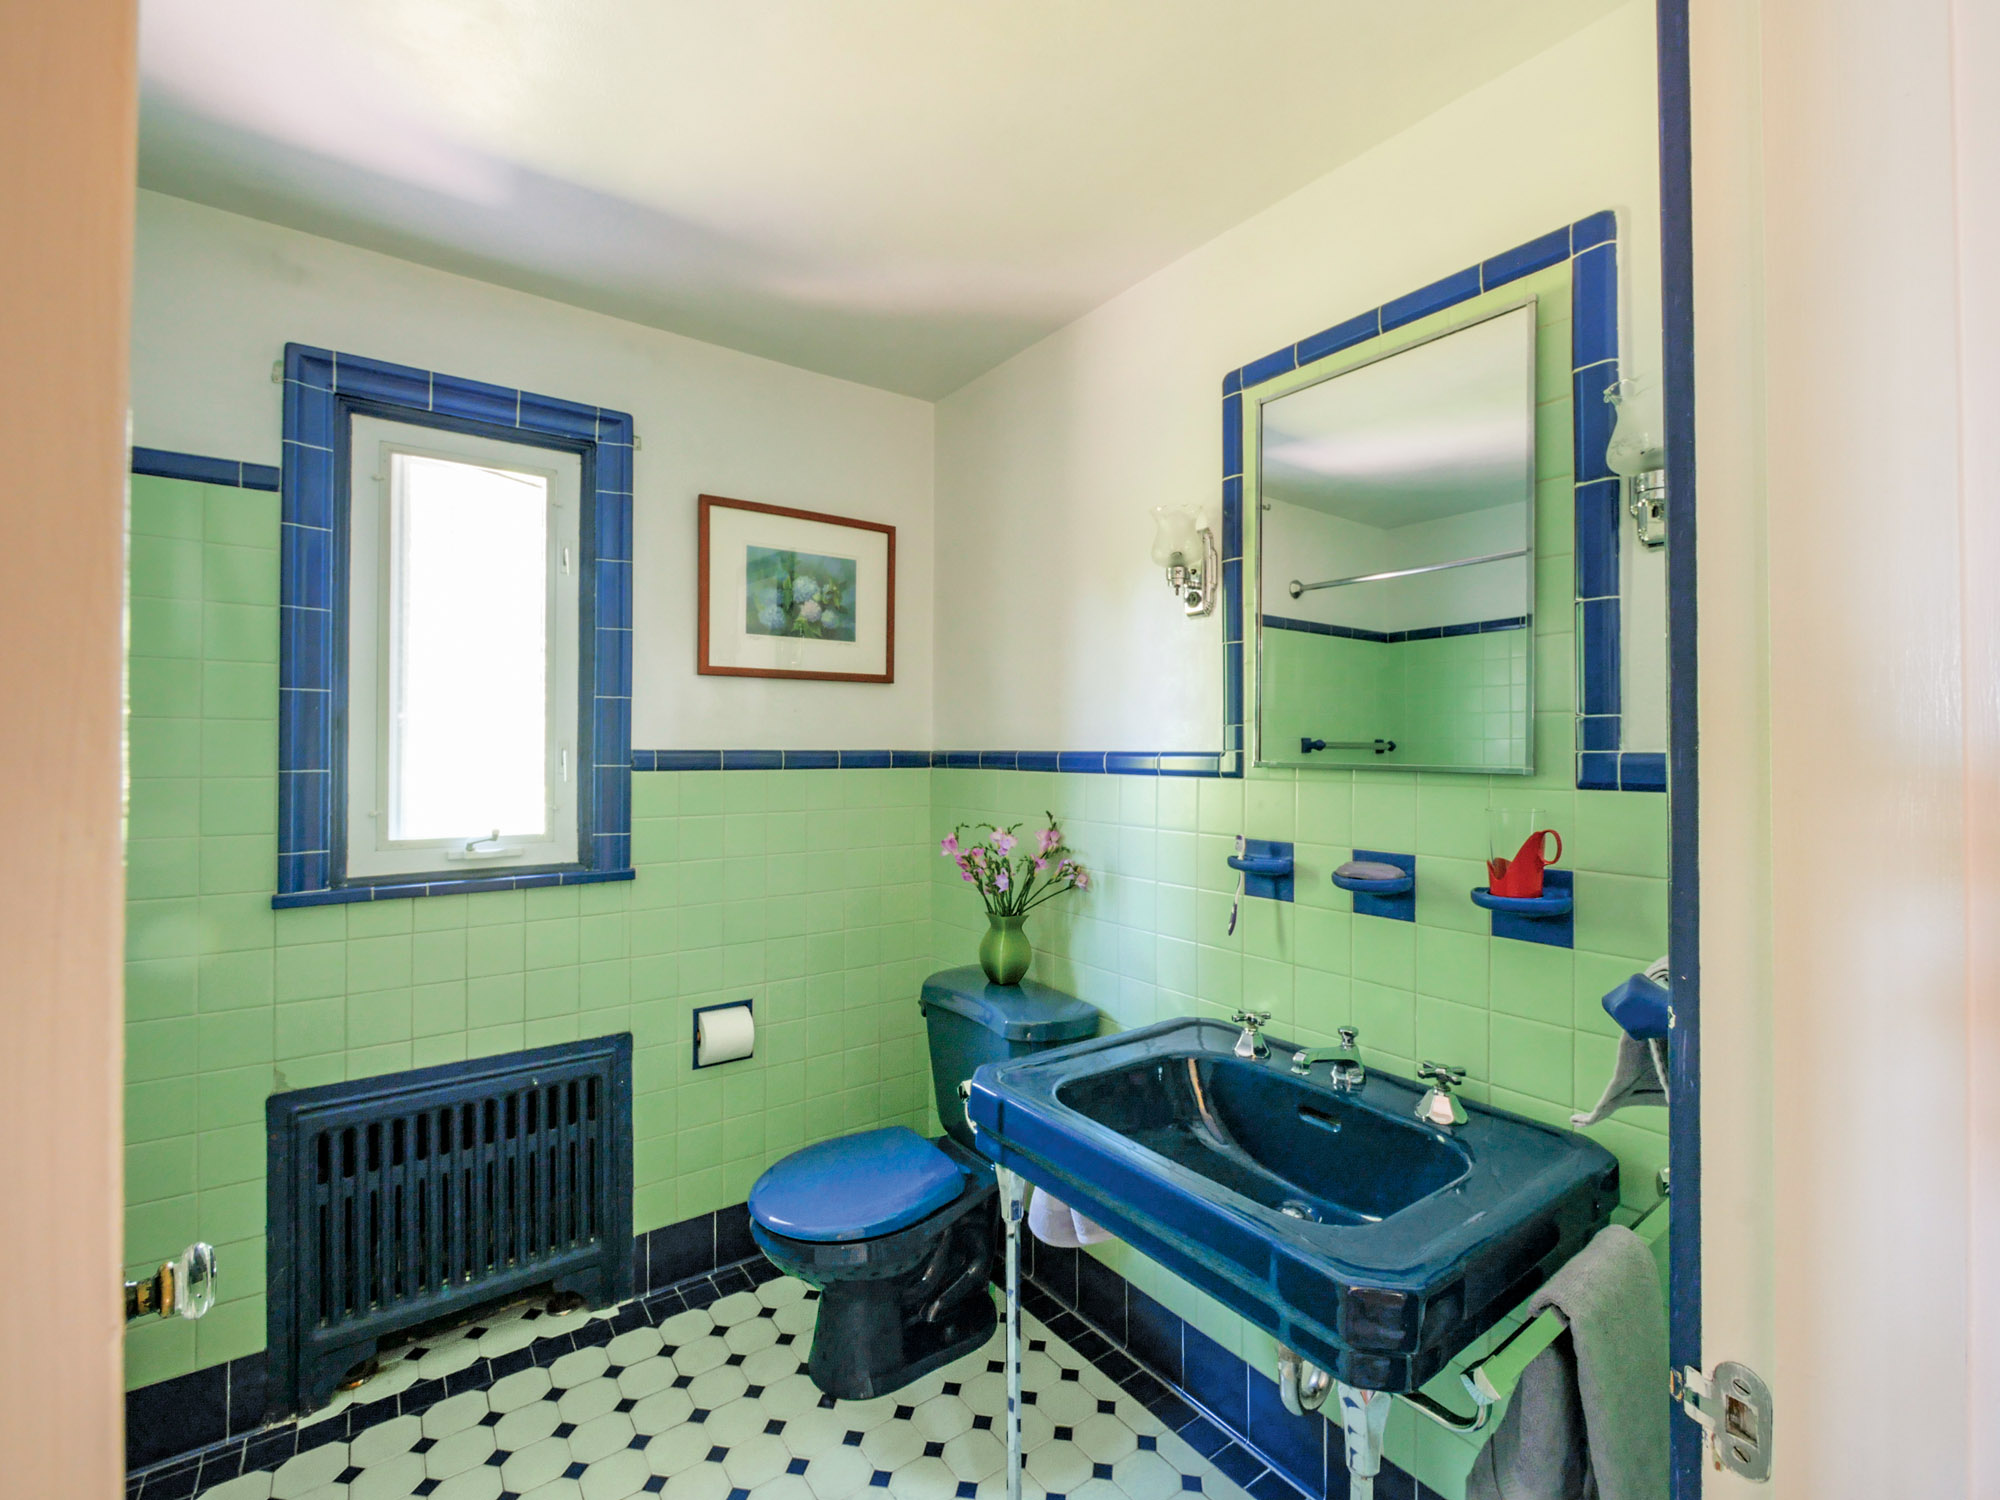 Only the toilets have been replaced in these surviving bathrooms. The rooms are bright, functional, and easy to maintain. Upstairs baths offer wide sinks and generous bathing areas.